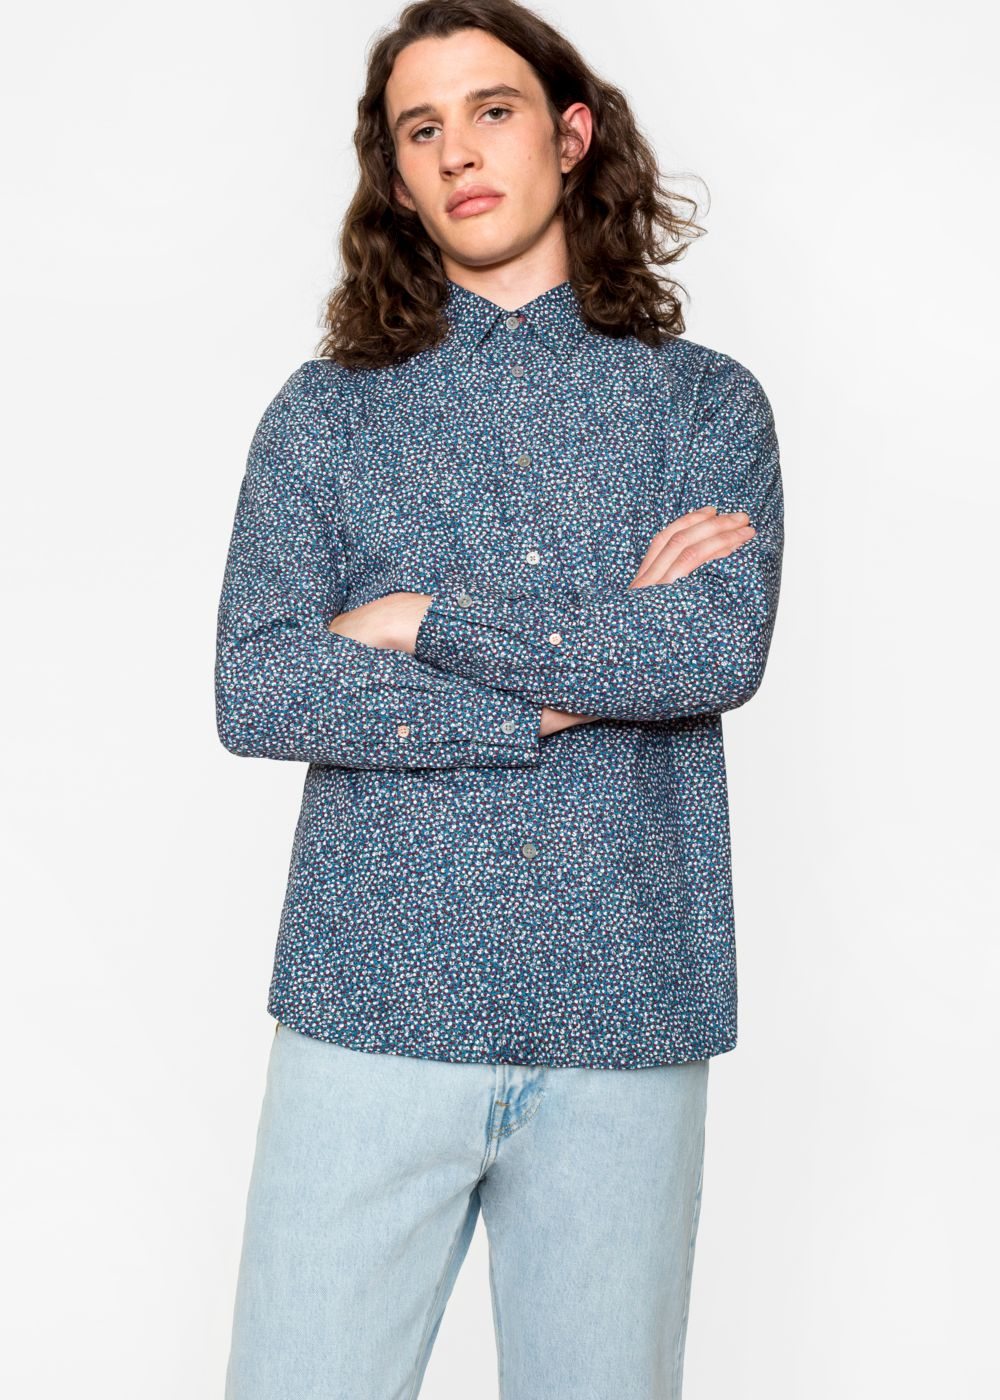 Paul Smith Men's Tailored-Fit Petrol 'Overlaid Circles' Print Cotton Shirt